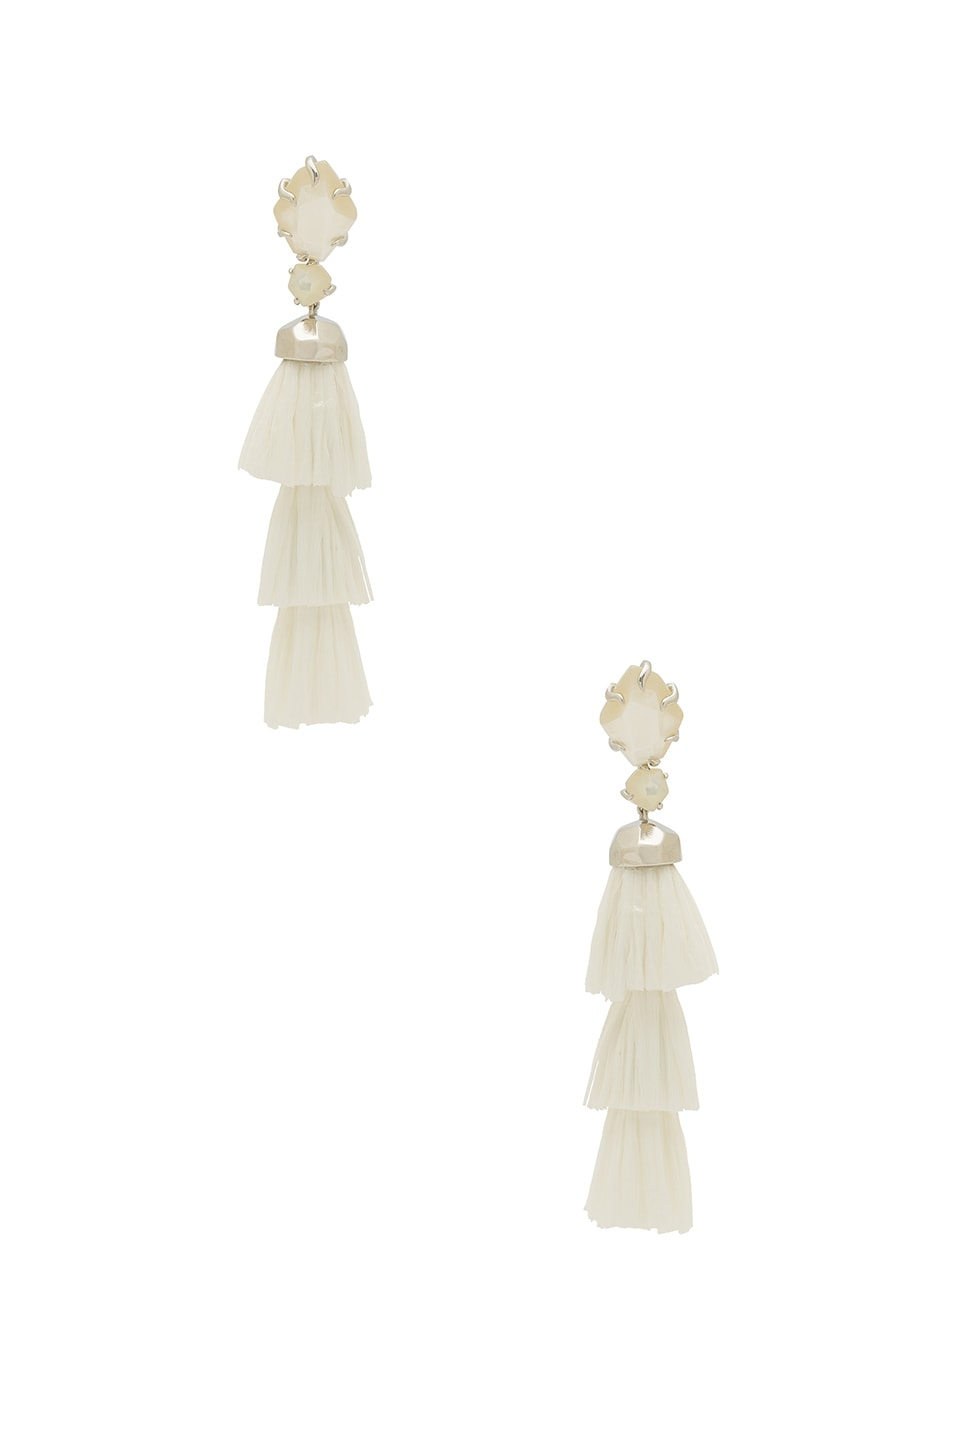 Kendra Scott Denise Earrings in Rhodium & Ivory Mother of Pearl